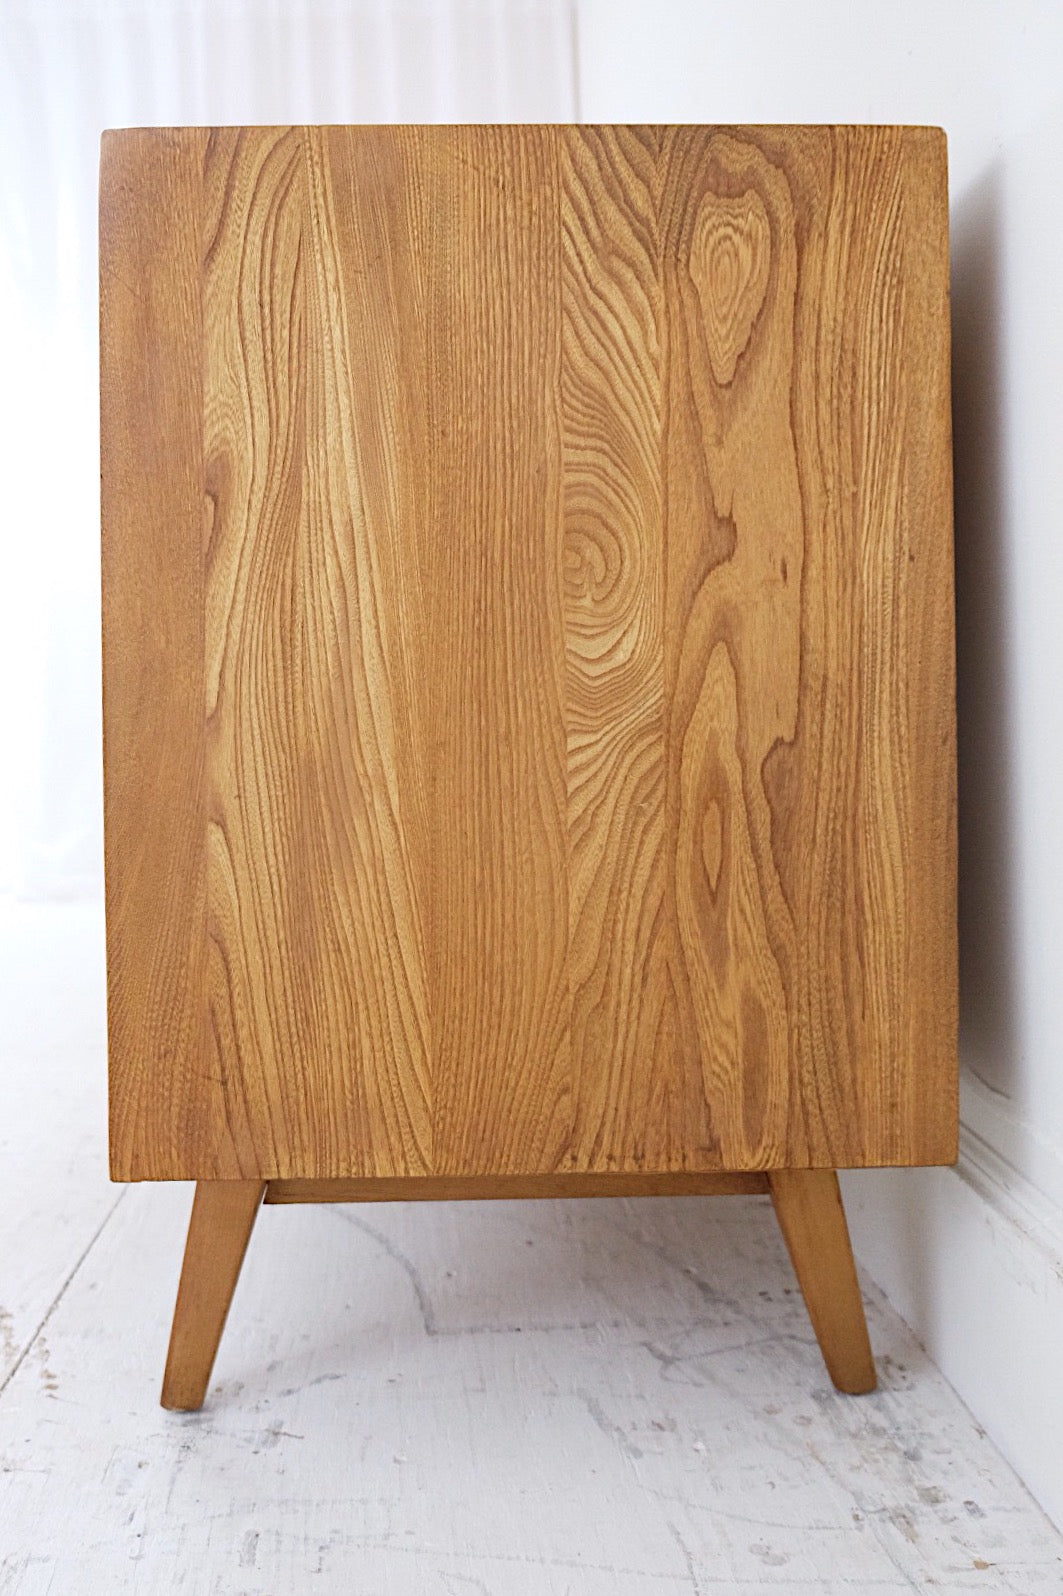 Bachelors Chest Mid Century Dresser in the Style of Raymond Loewy for Mengel Carved Striped Registers